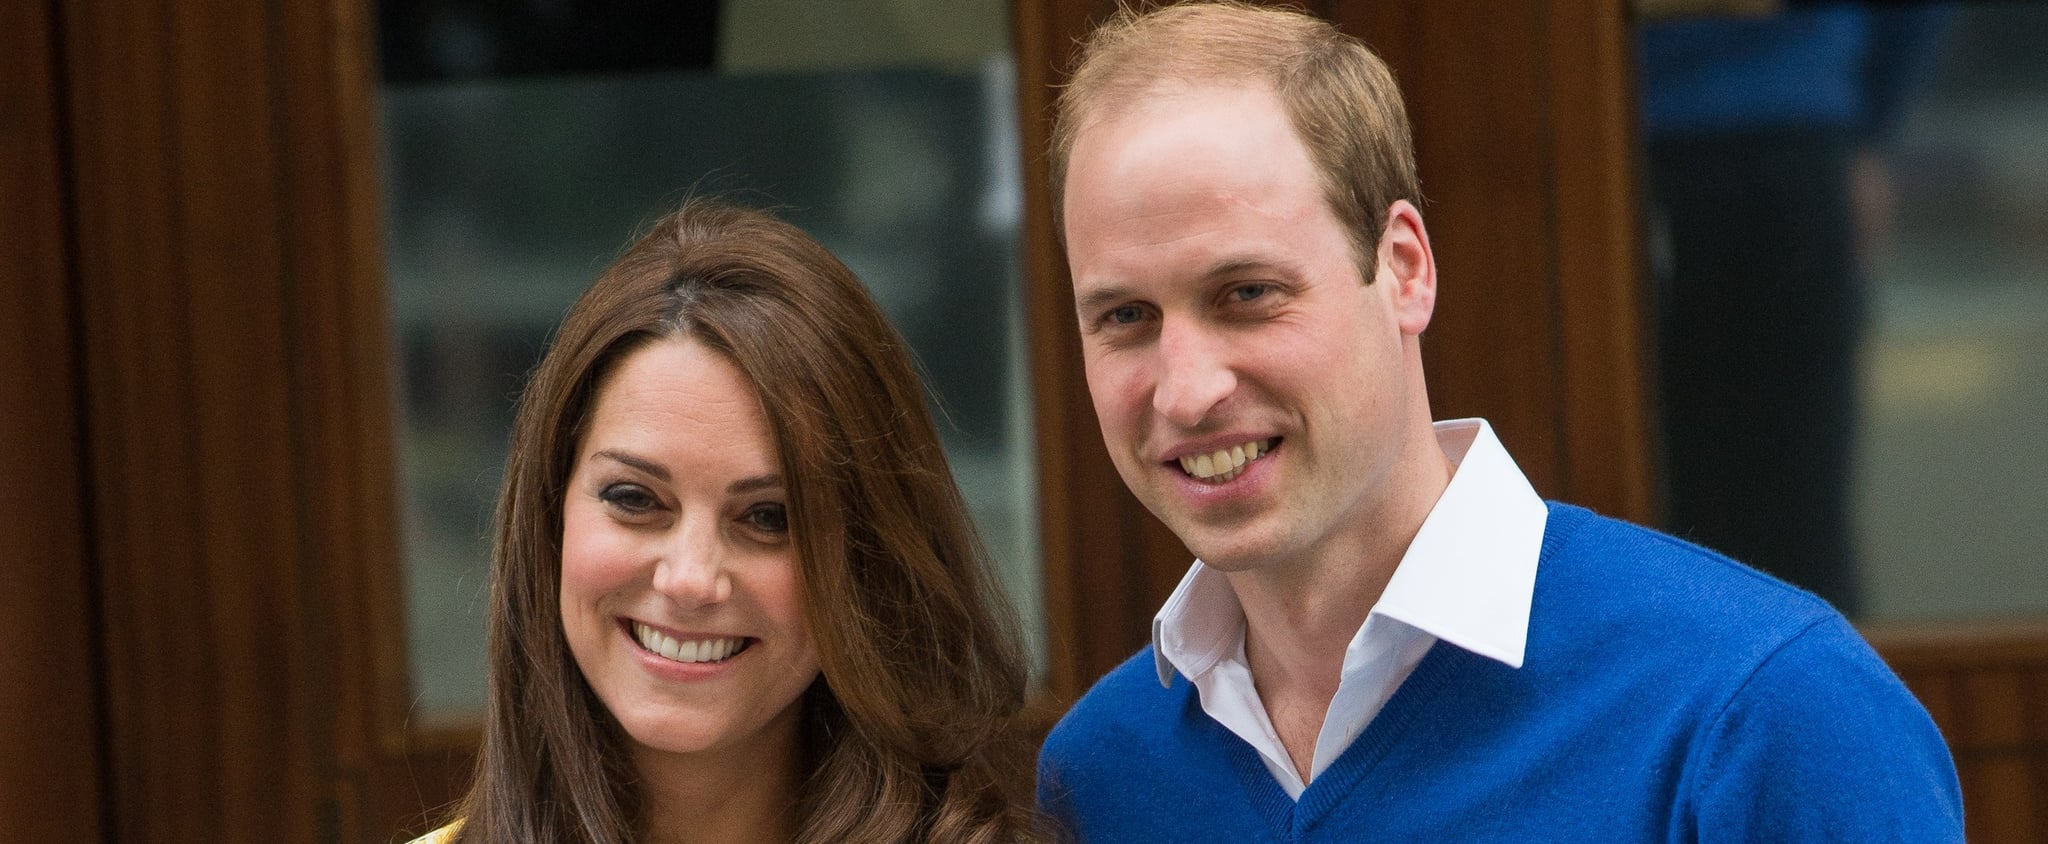 Does Kate Middleton Breastfeed?